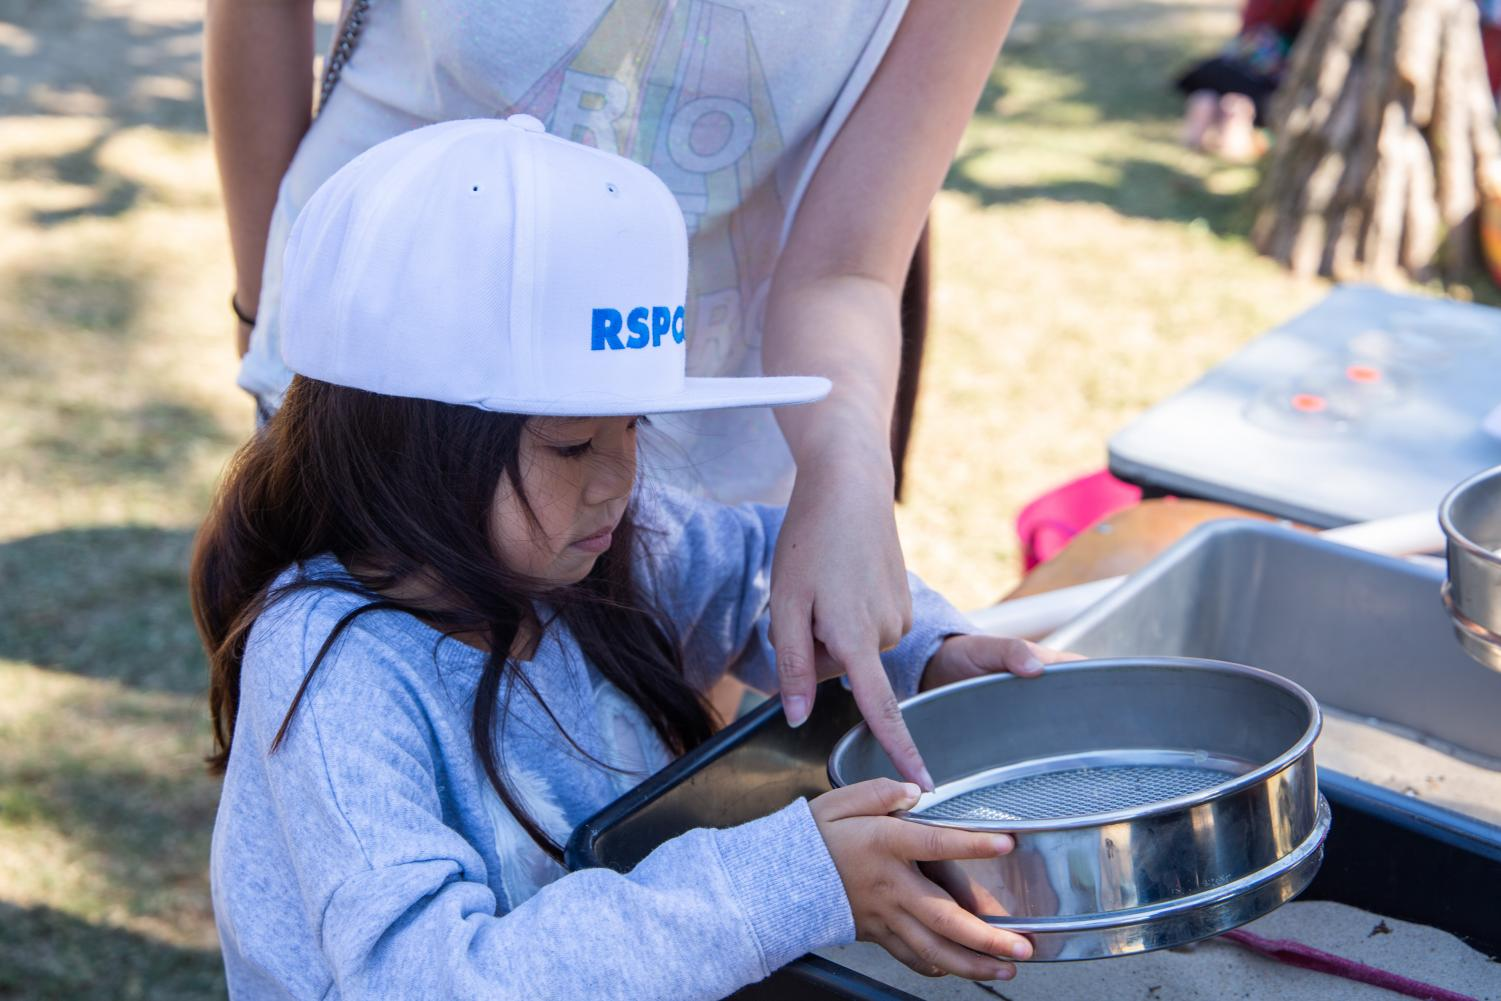 Child being shown how to sift micro plastics from sand with a sieve